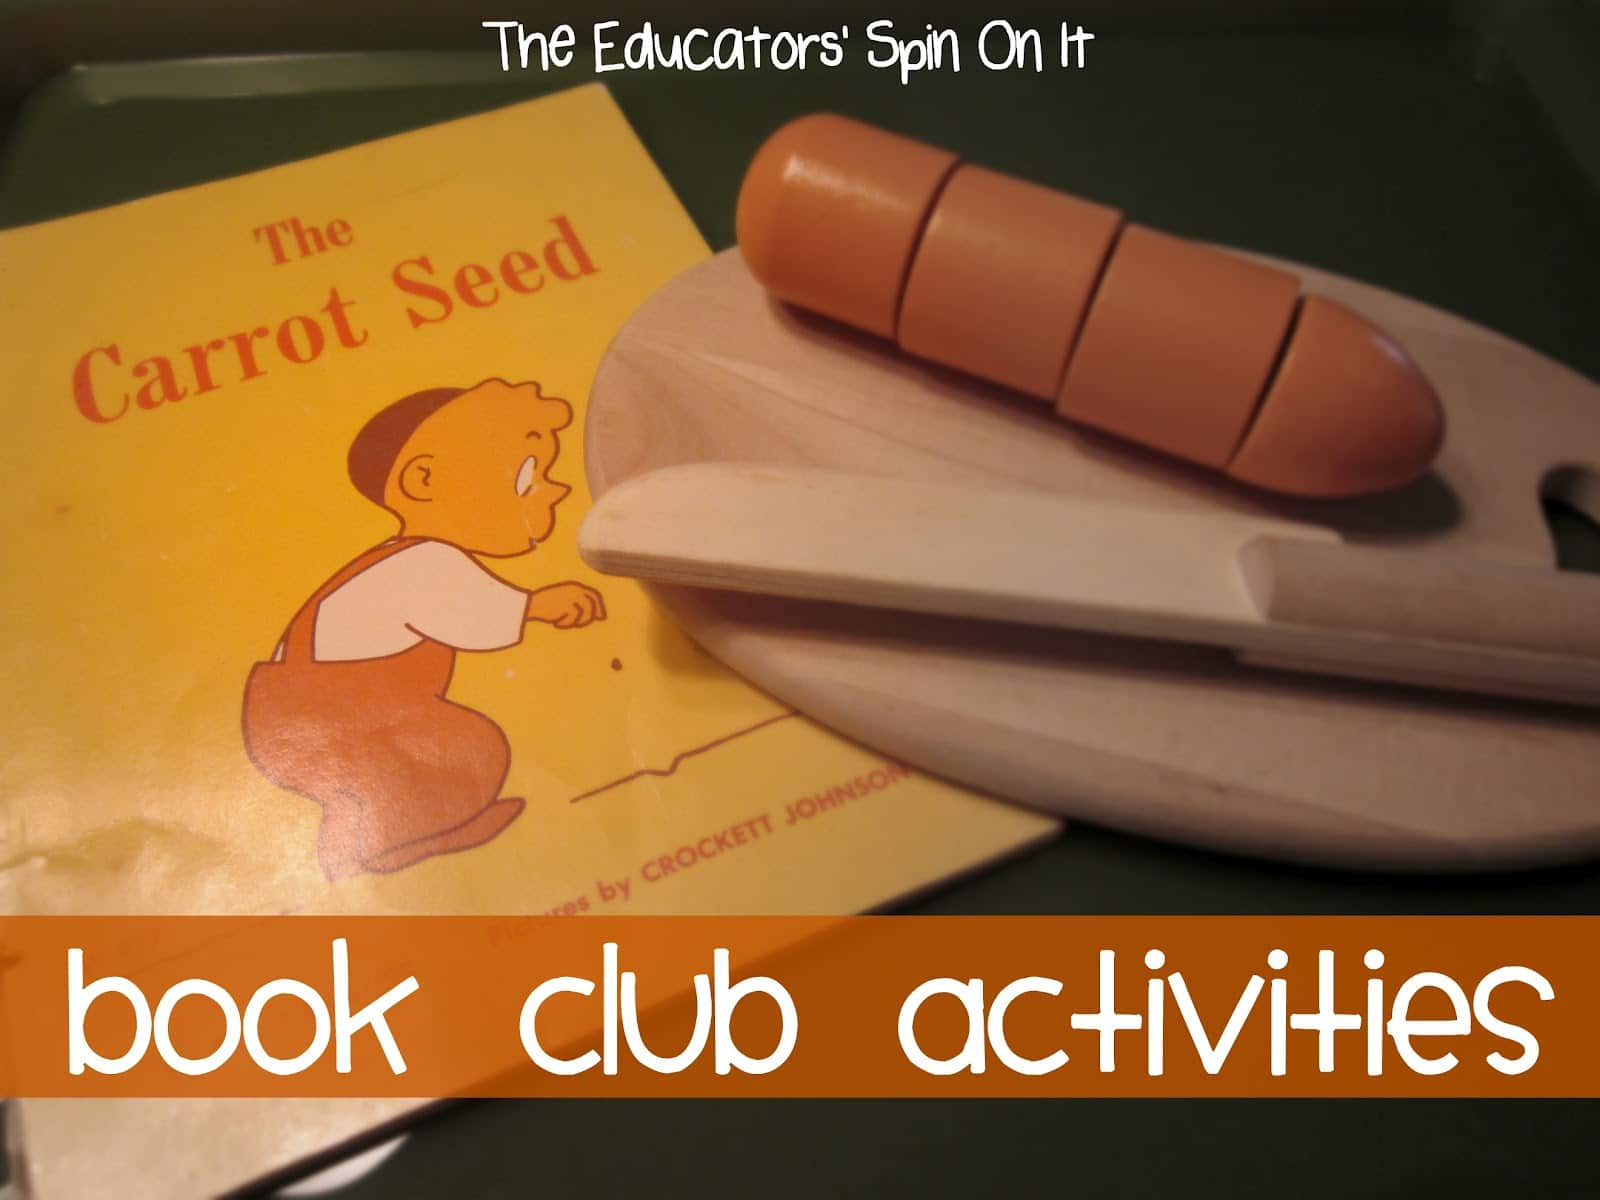 The Carrot Seed Activities